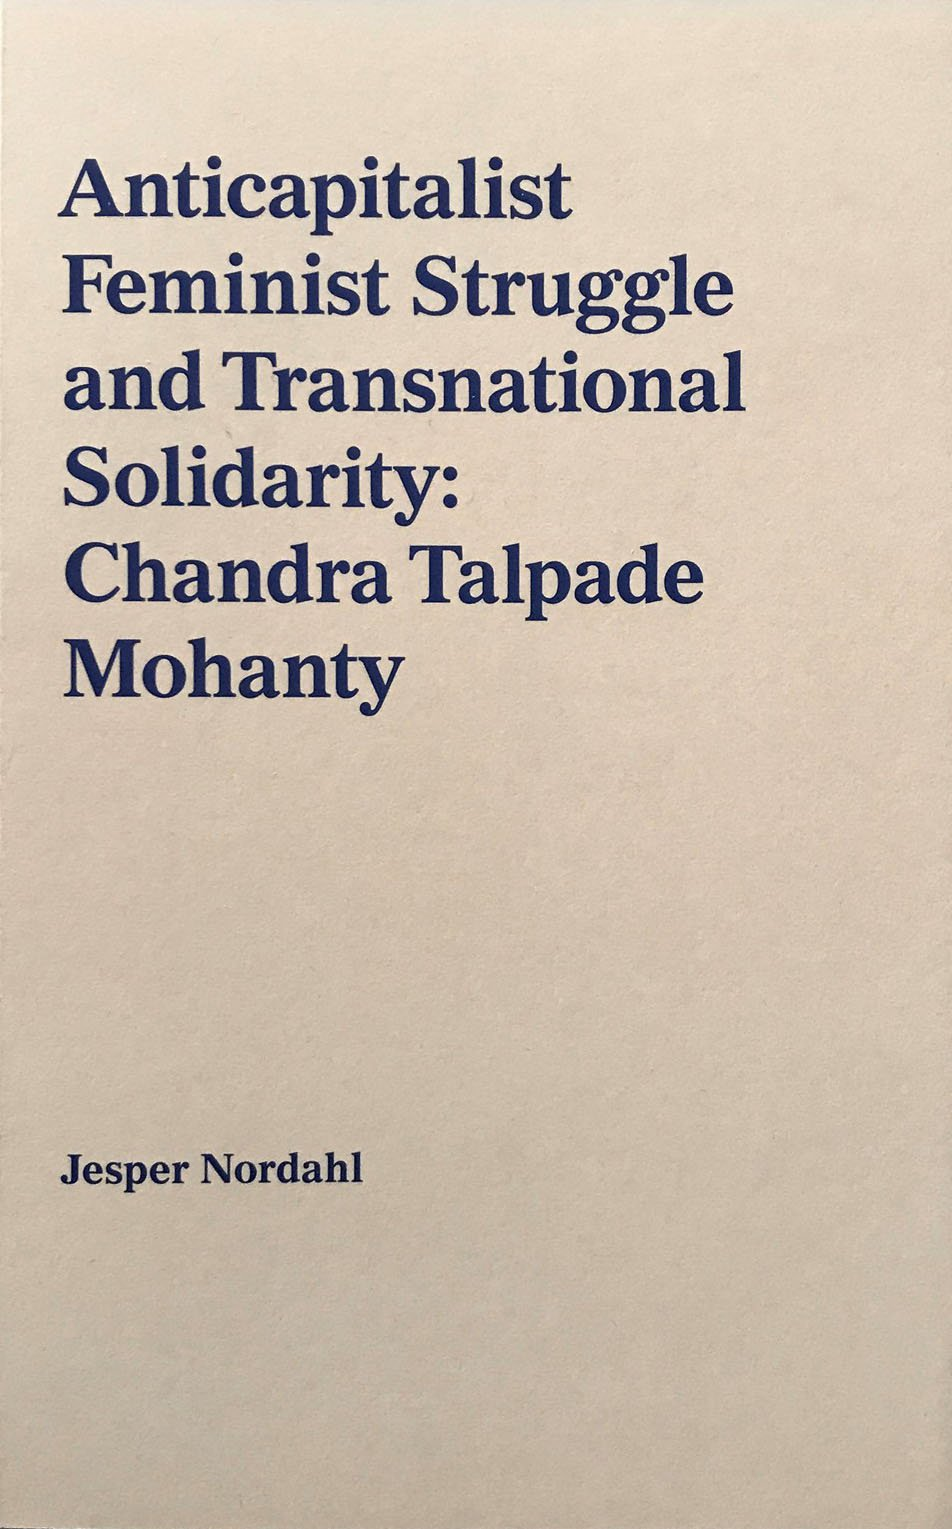 Anticapitalist Feminist Struggle and Transnational Solidarity: Chandra Talpade Mohanty